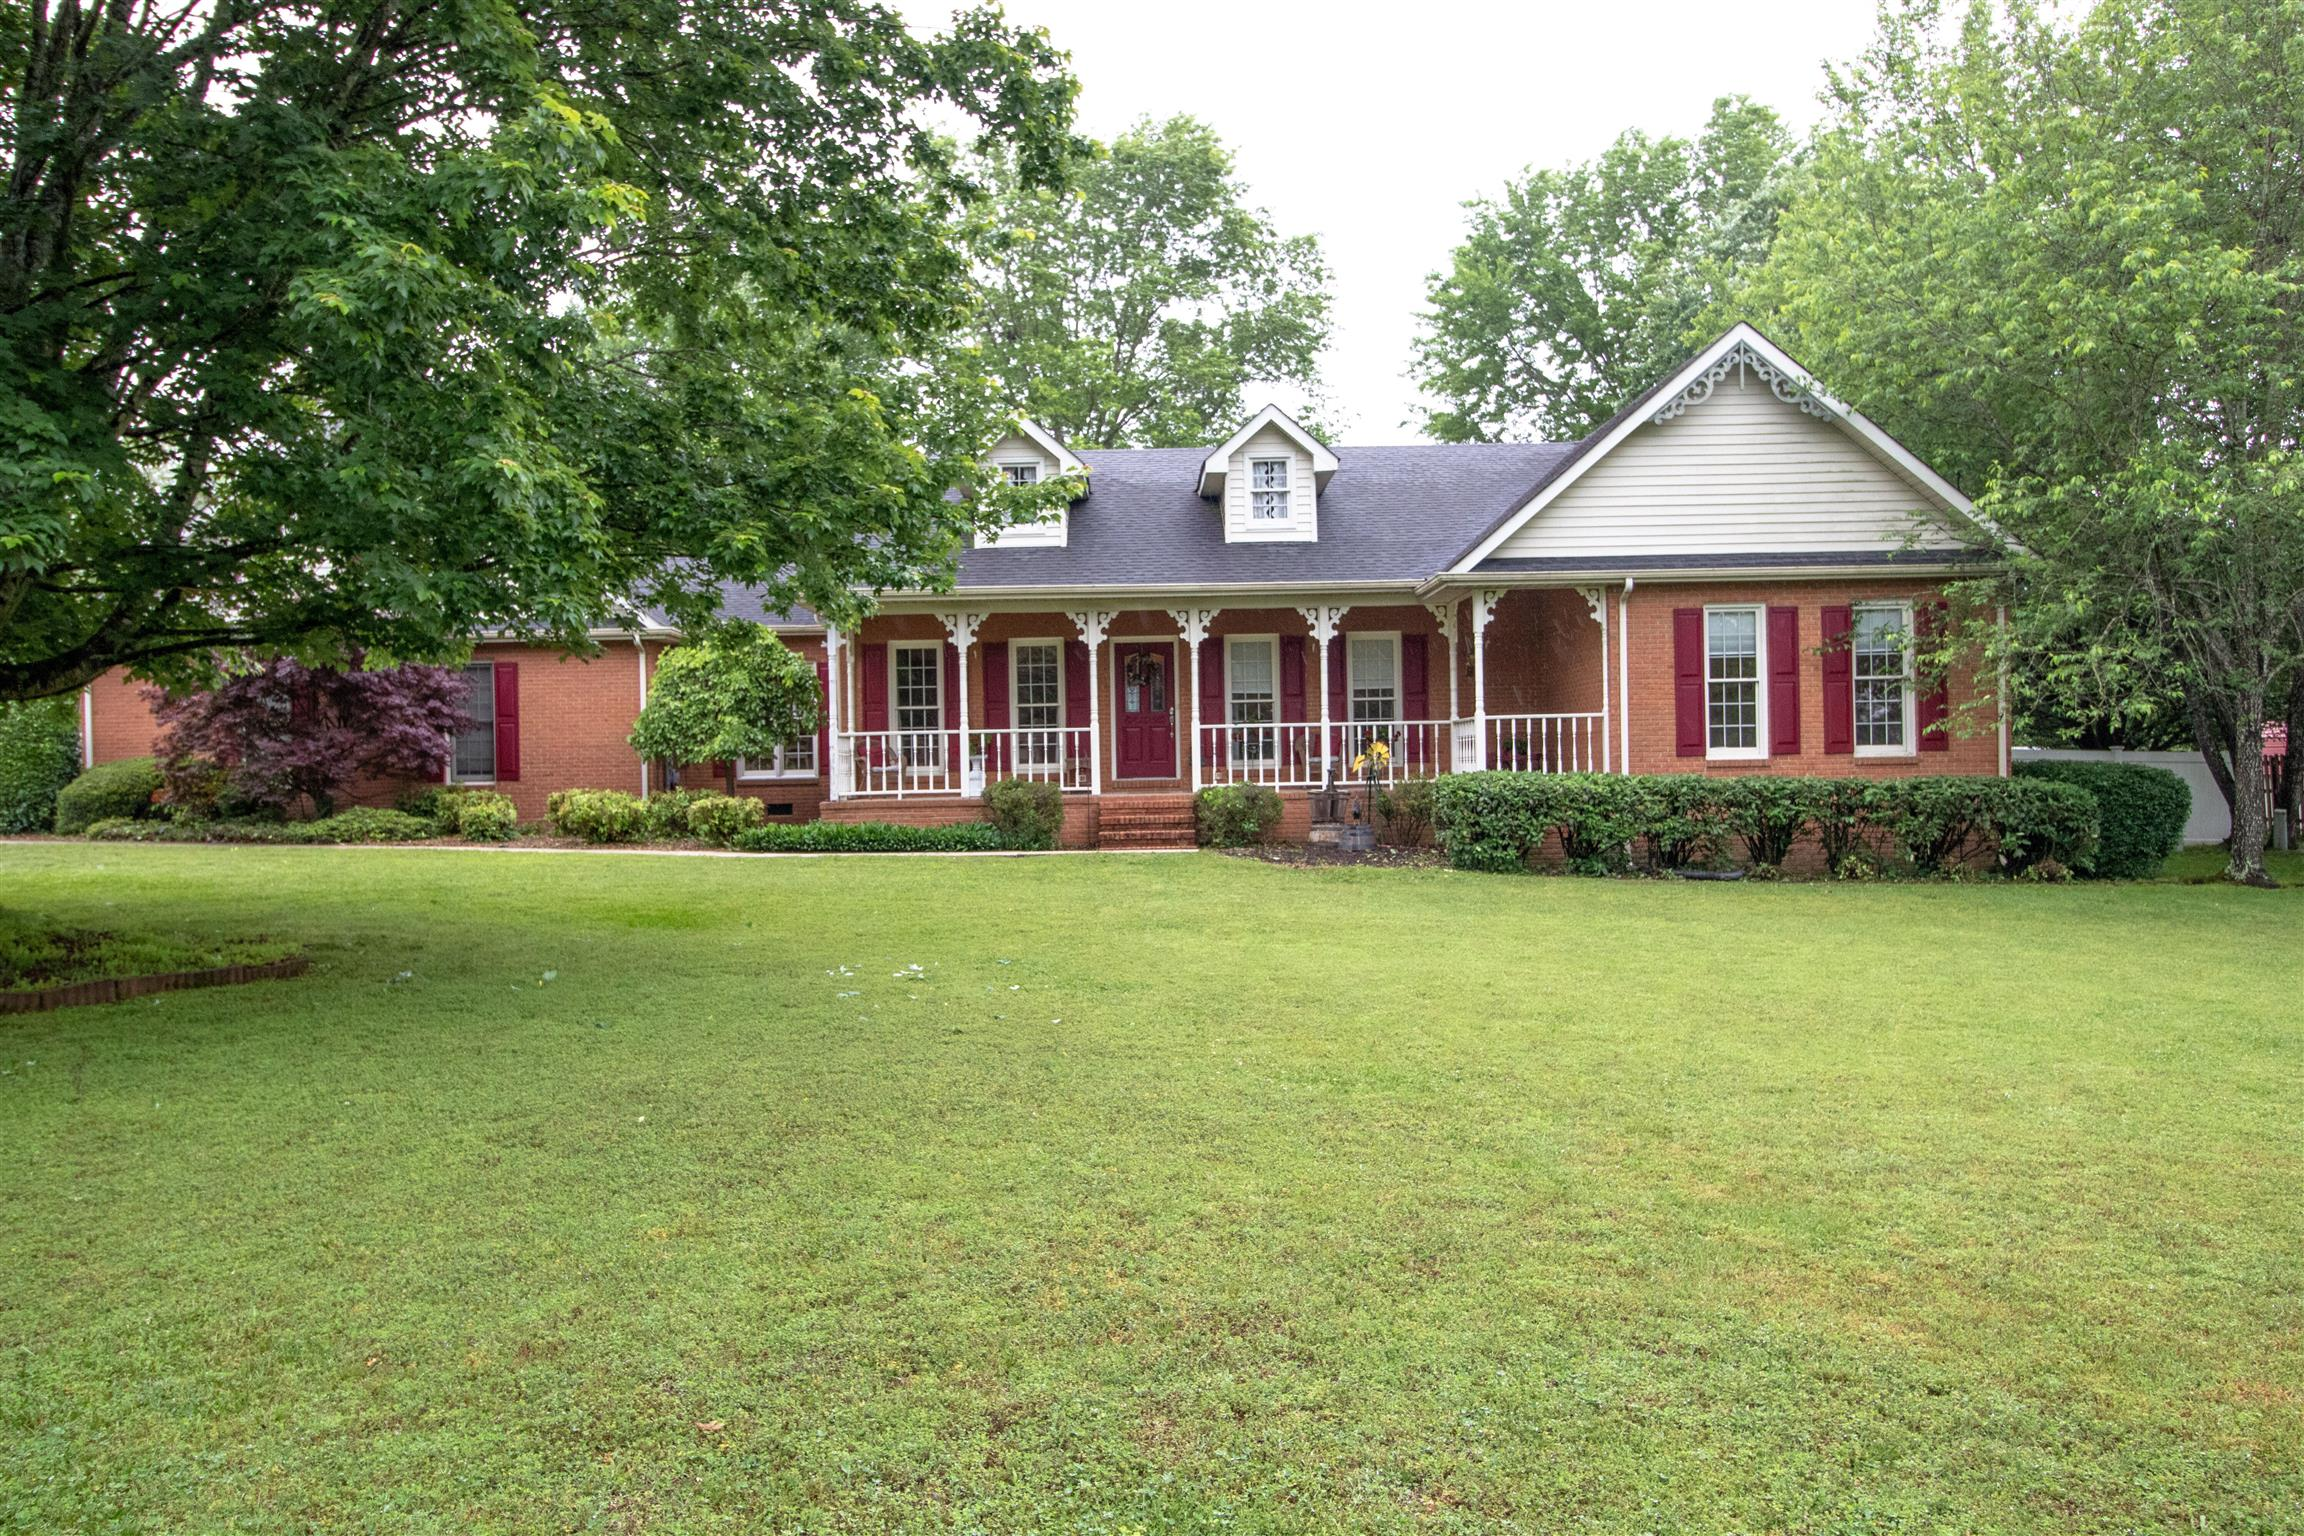 107 BERKLEY CT, Tullahoma, TN 37388 - Tullahoma, TN real estate listing